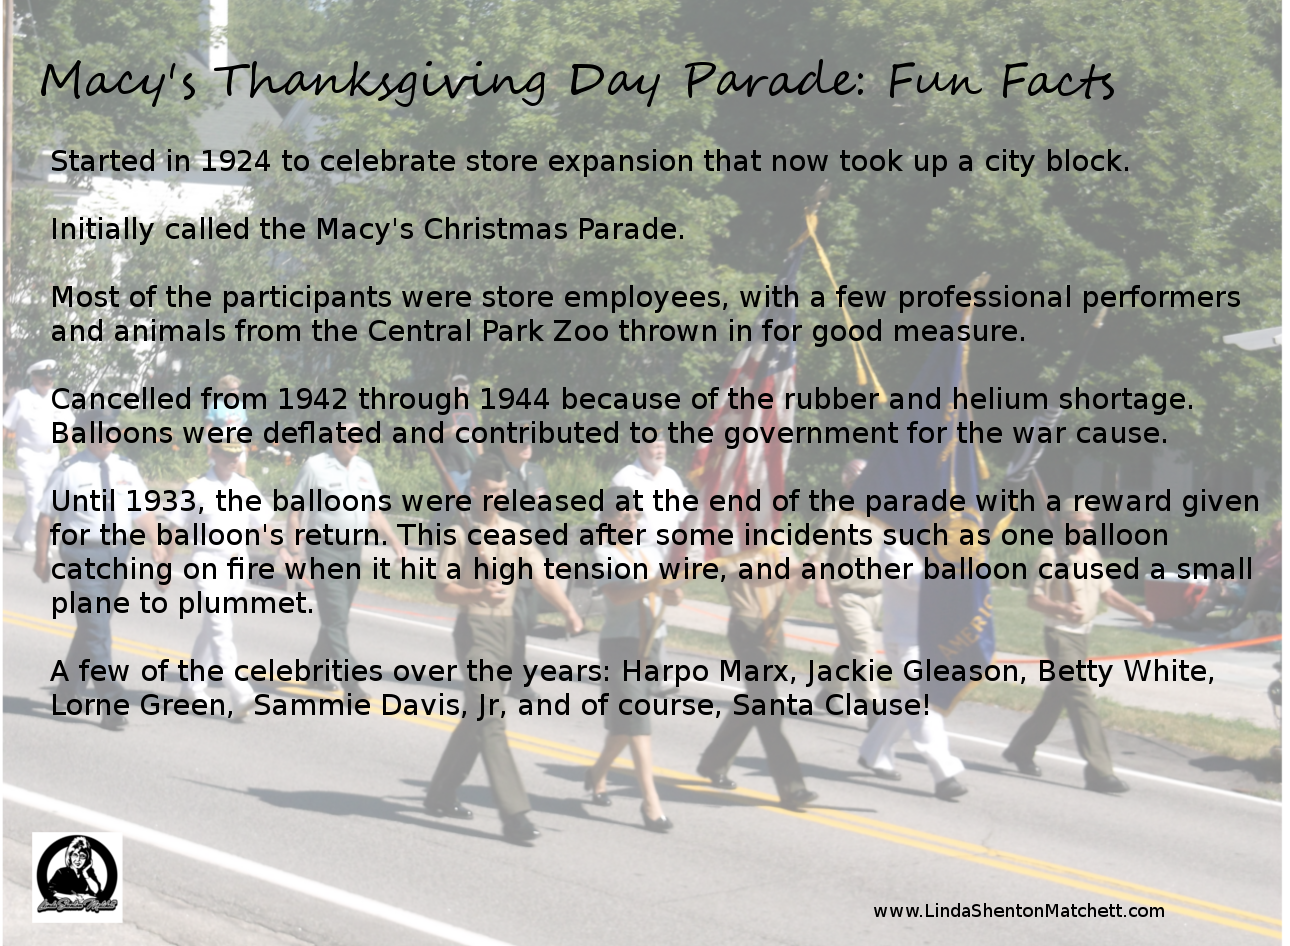 Traveling Tuesday Macy S Thanksgiving Day Parade Thanksgiving Day Parade Macys Thanksgiving Parade Macy S Thanksgiving Day Parade